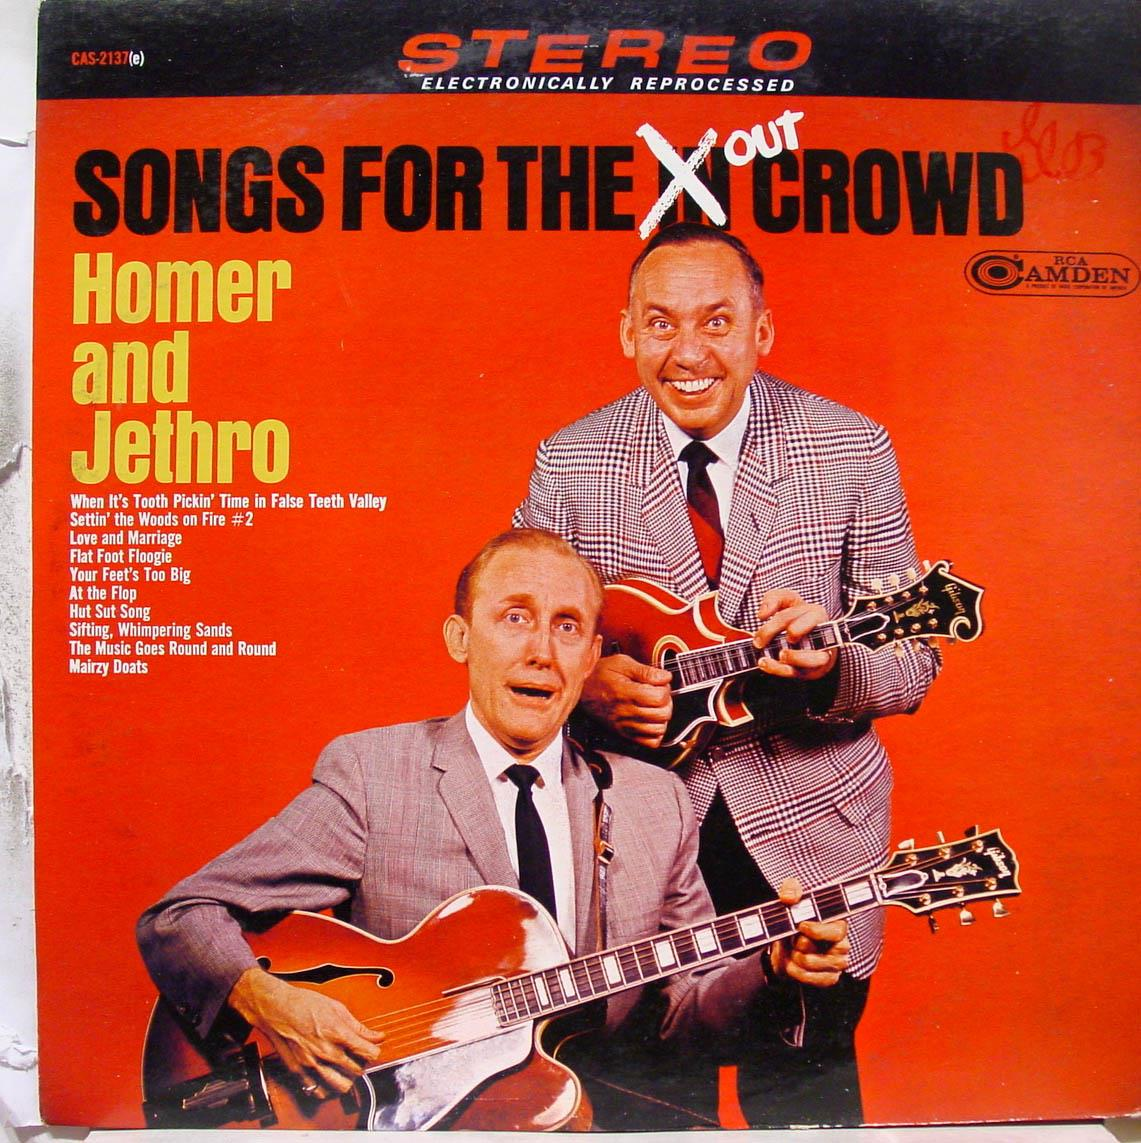 HOMER & JETHRO - Homer & Jethro Songs For The Out Crowd Lp Cas 2137 Vg+ 1967 Vinyl Record 1s4s (songs For The Out